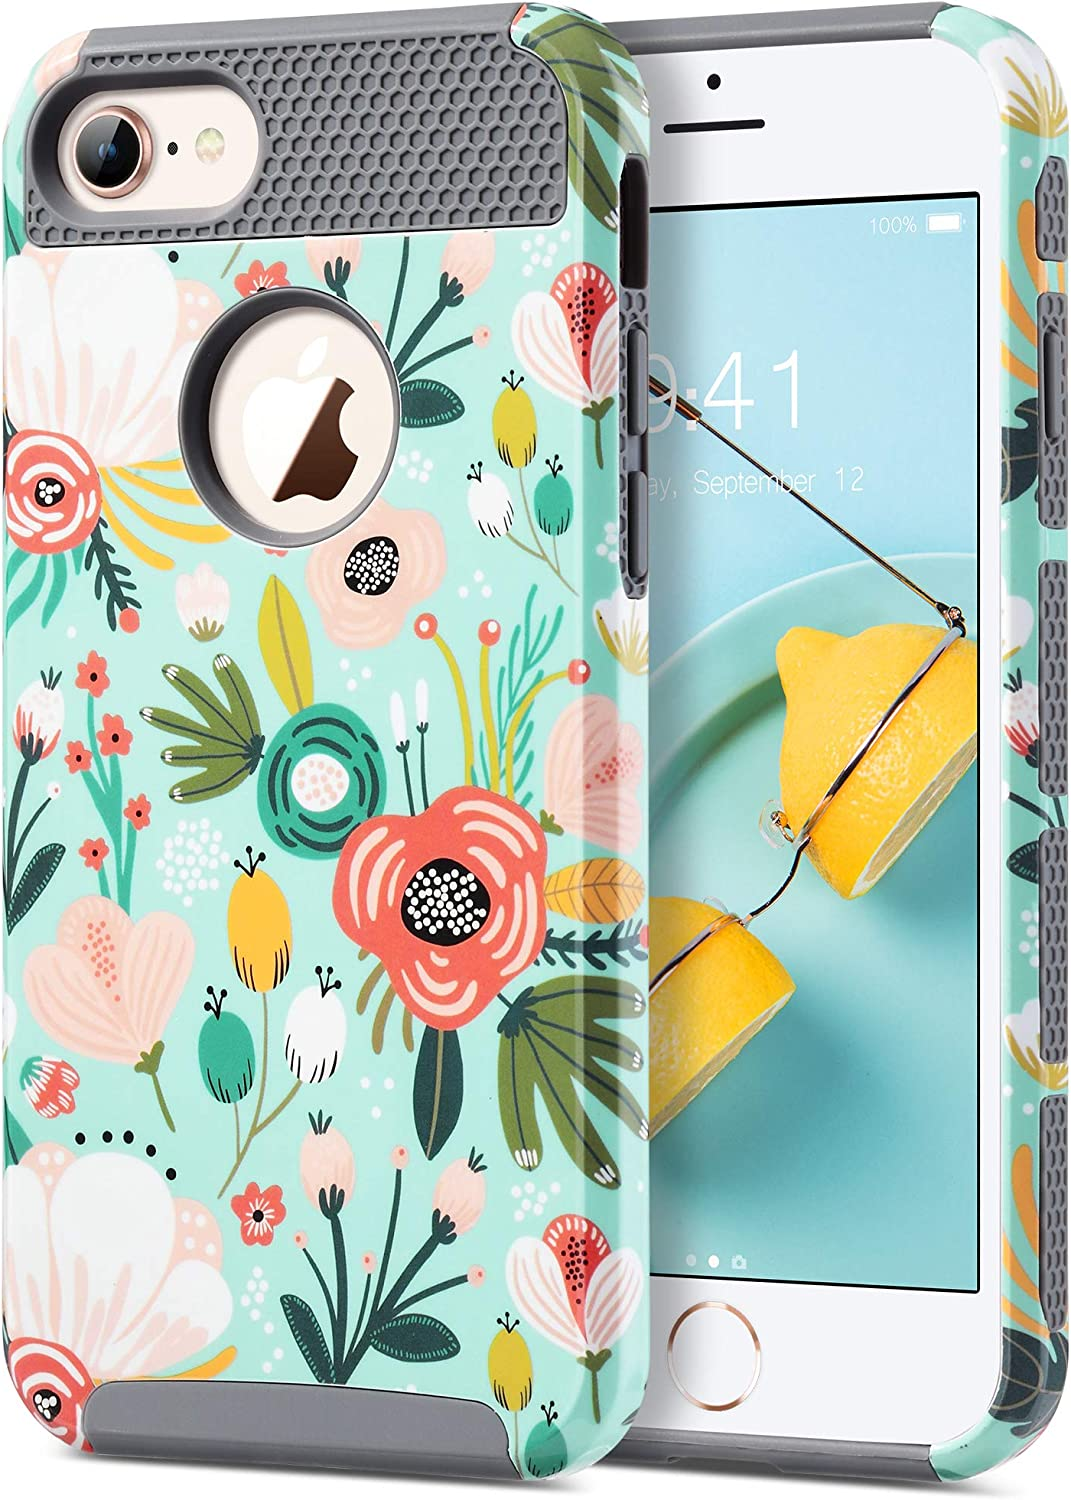 ULAK iPhone 7 Case, Colorful Series Slim Fit Hybrid Dual Layer Scratch Resistant Hard PC Back Cover Shock Absorbent TPU Bumper Case for Apple iPhone 7 4.7 inch, Mint Floral